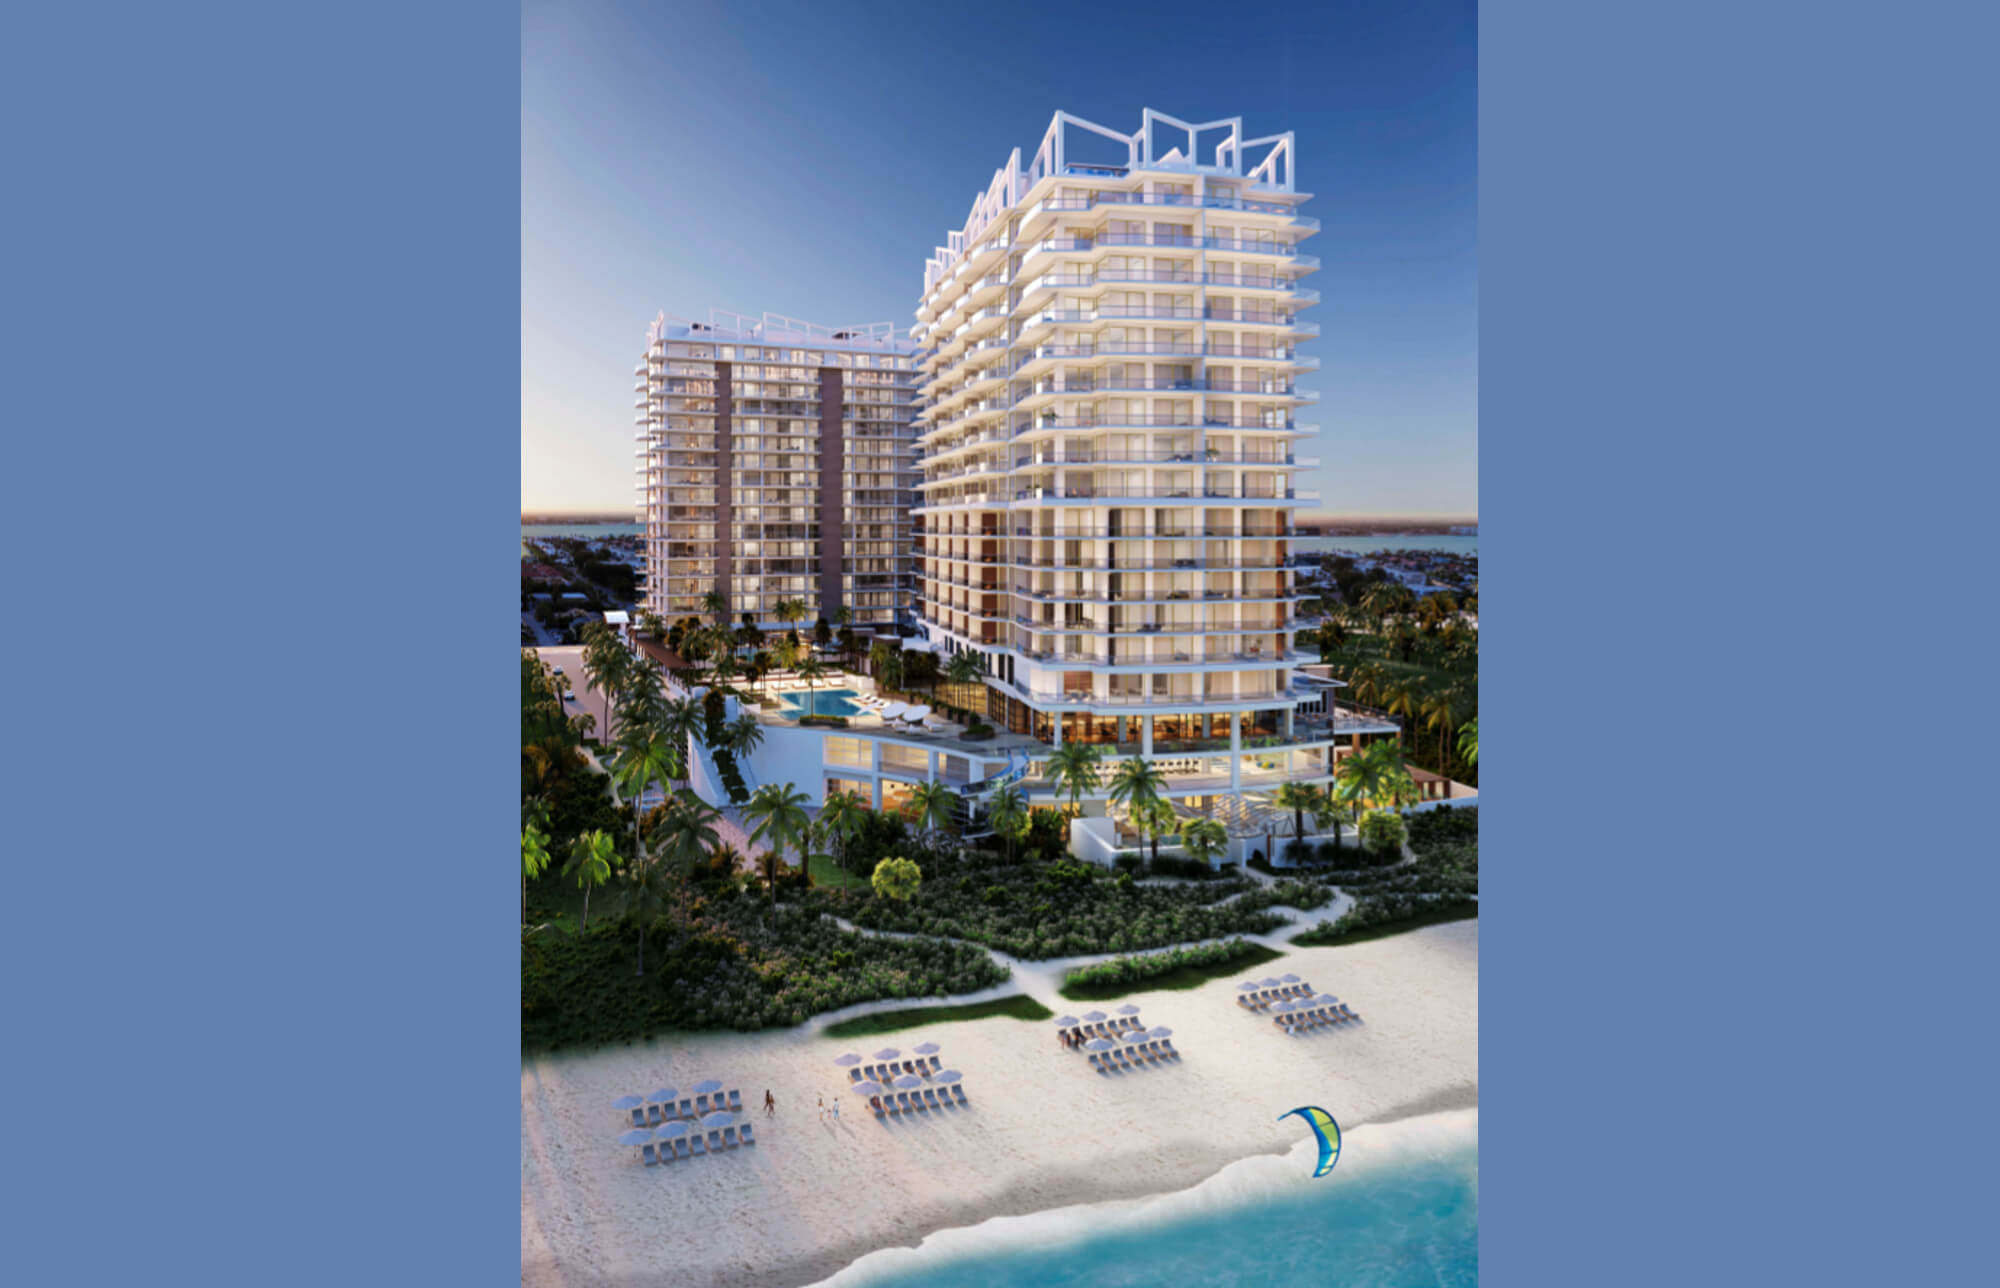 Palm Beach County, Florida Condo Residences